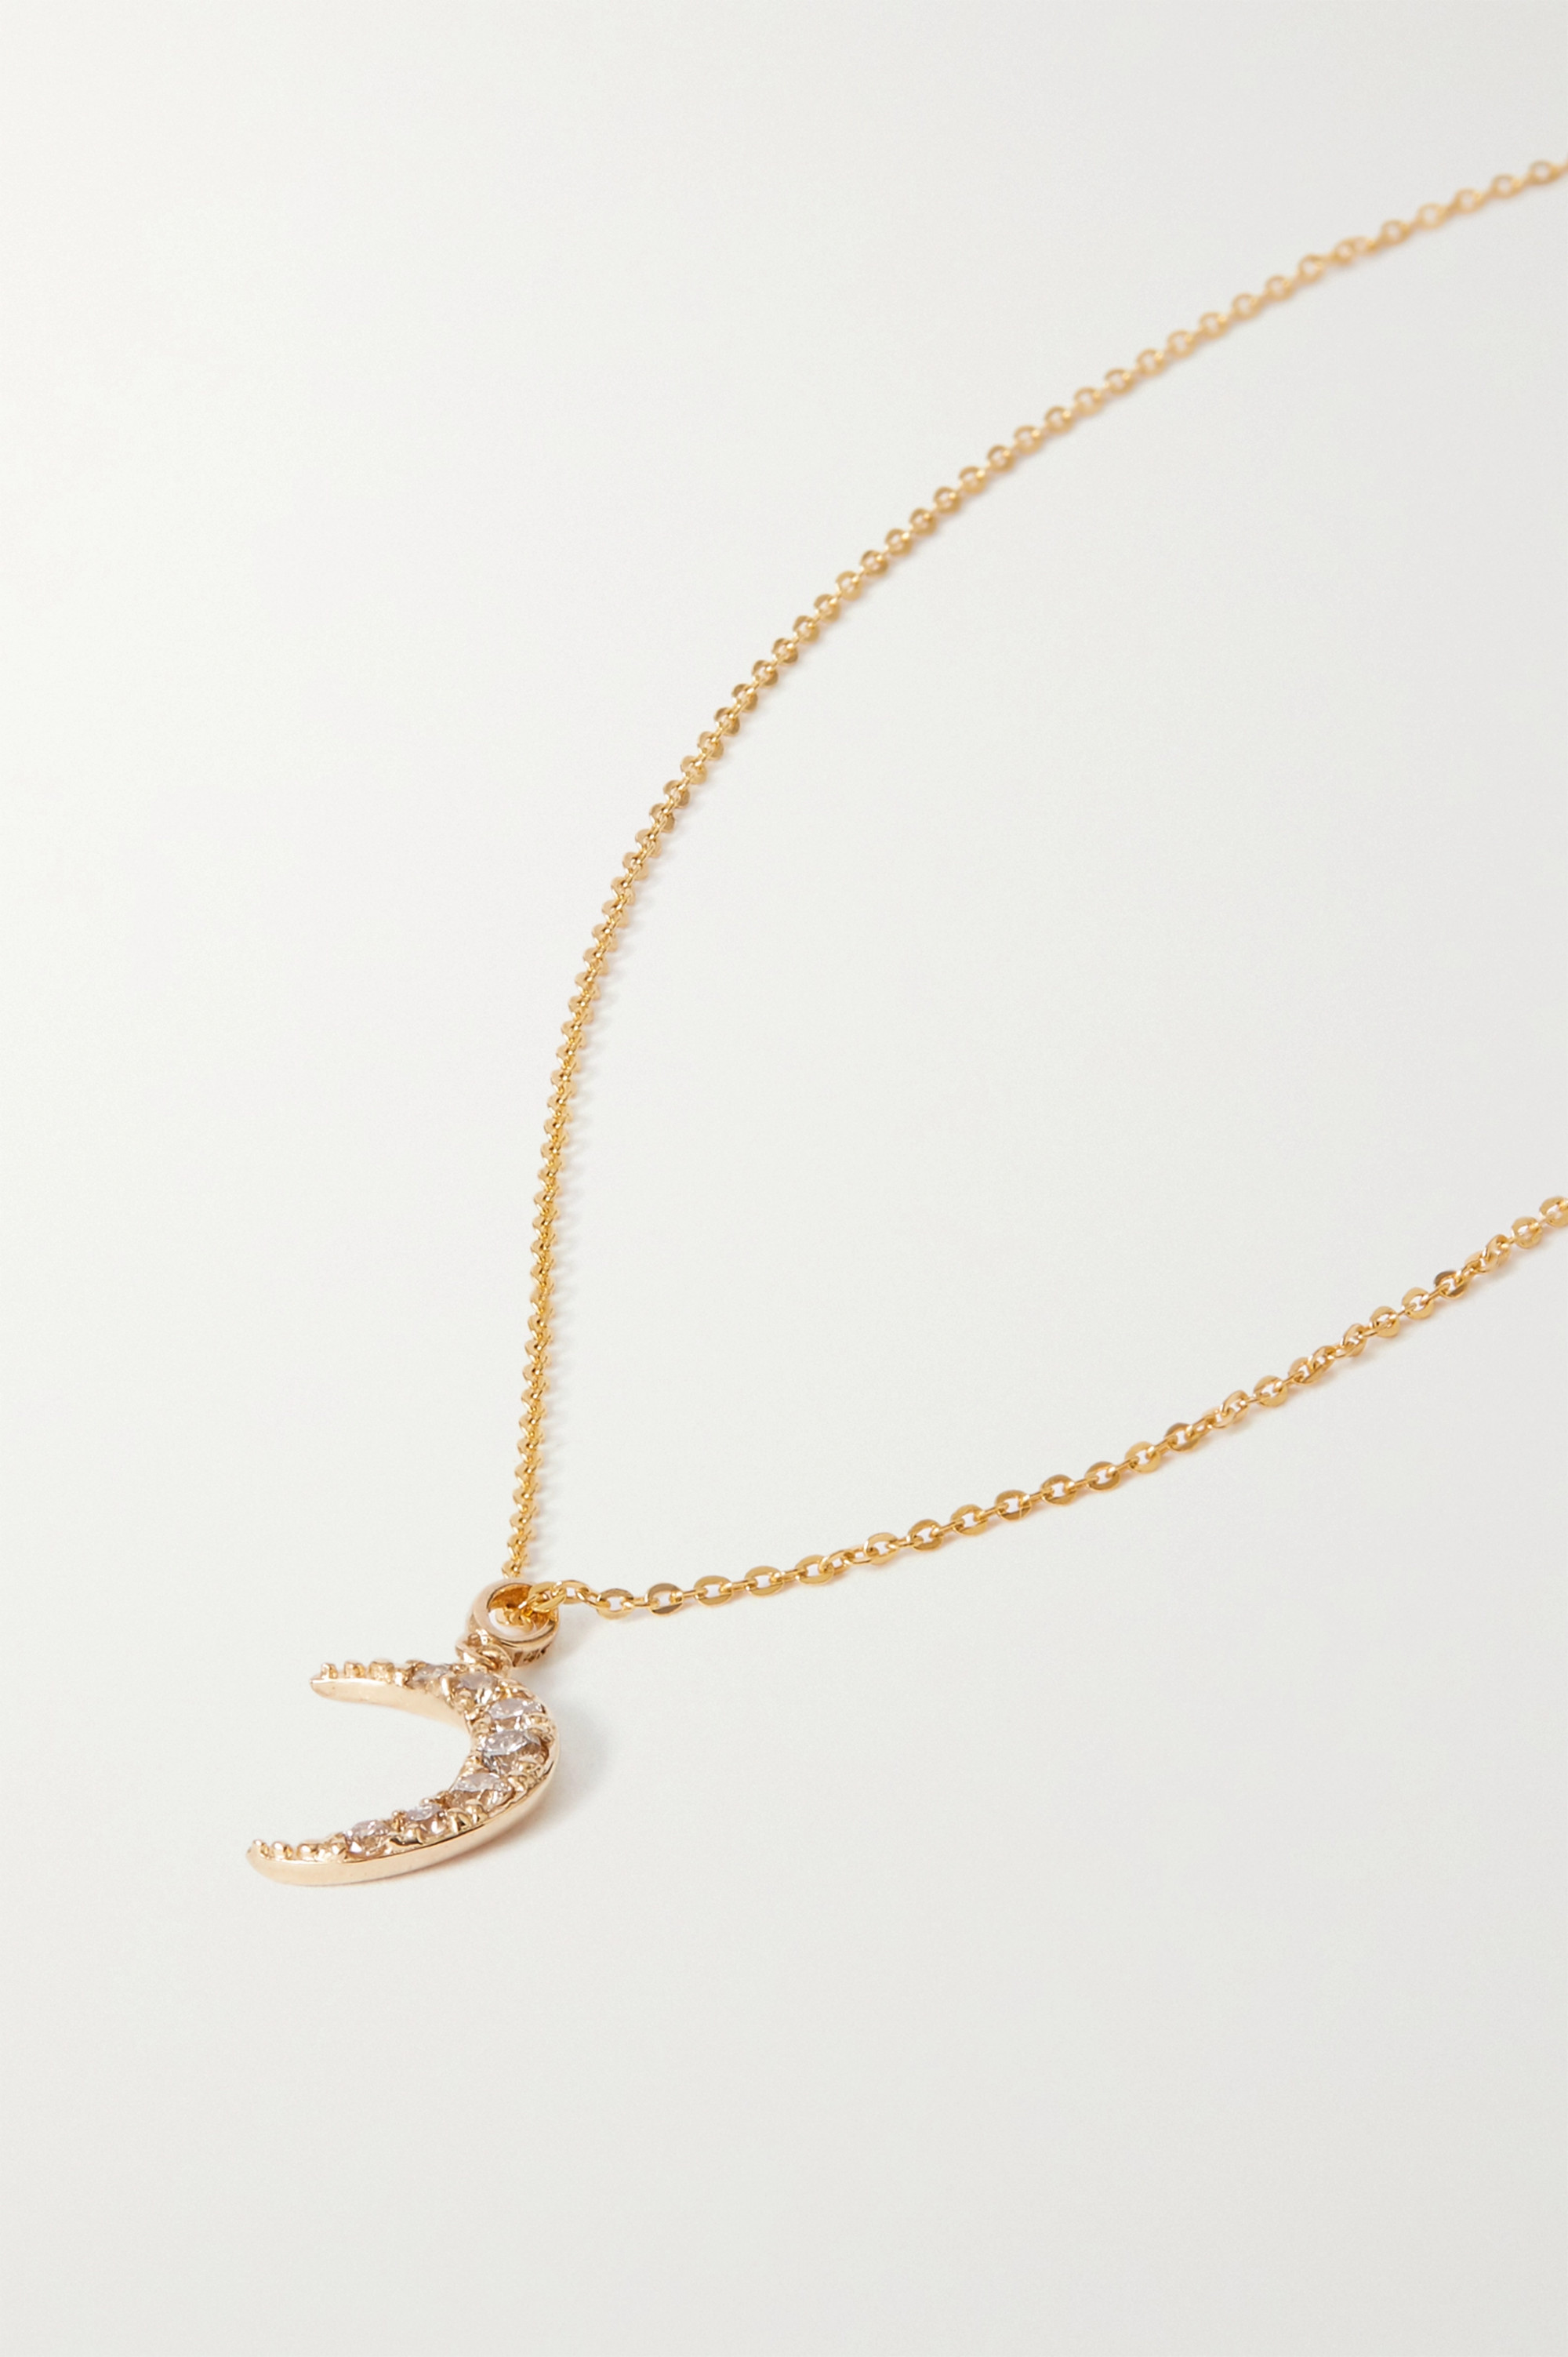 Loren Stewart + NET SUSTAIN 14-karat gold diamond necklace